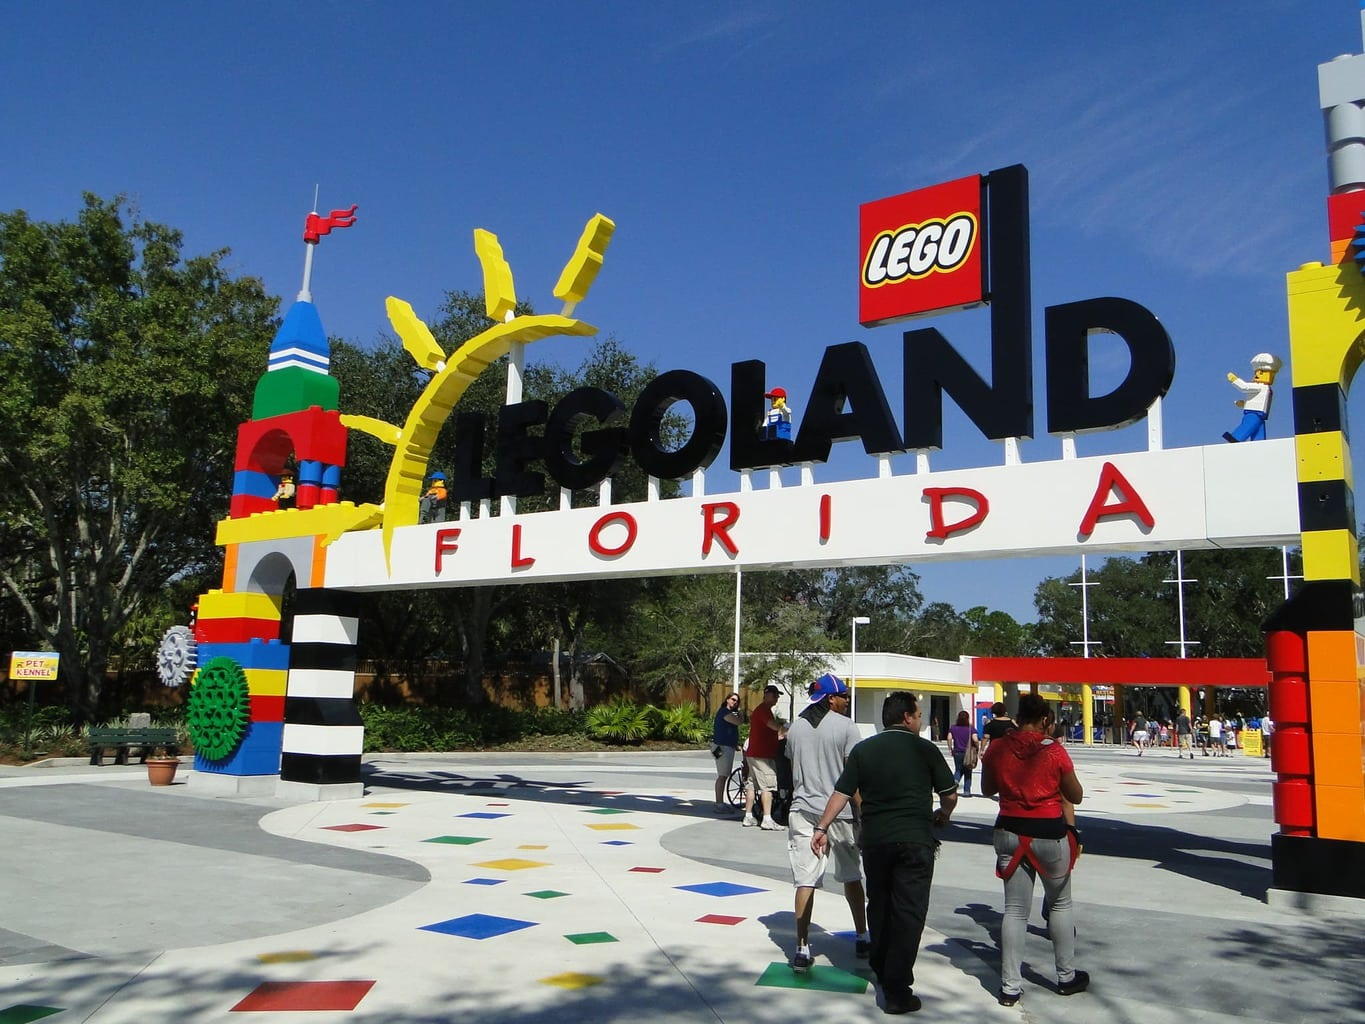 LEGOLAND® Florida Resort is a multi-day vacation destination built for kids Located in Central Florida's Winter Haven, just 45 minutes from Orlando and Tampa, the resort includes an interactive, acre theme park with more than 50 rides, shows and attractions inspired by popular LEGO® brands and characters, LEGOLAND Water Park and a.